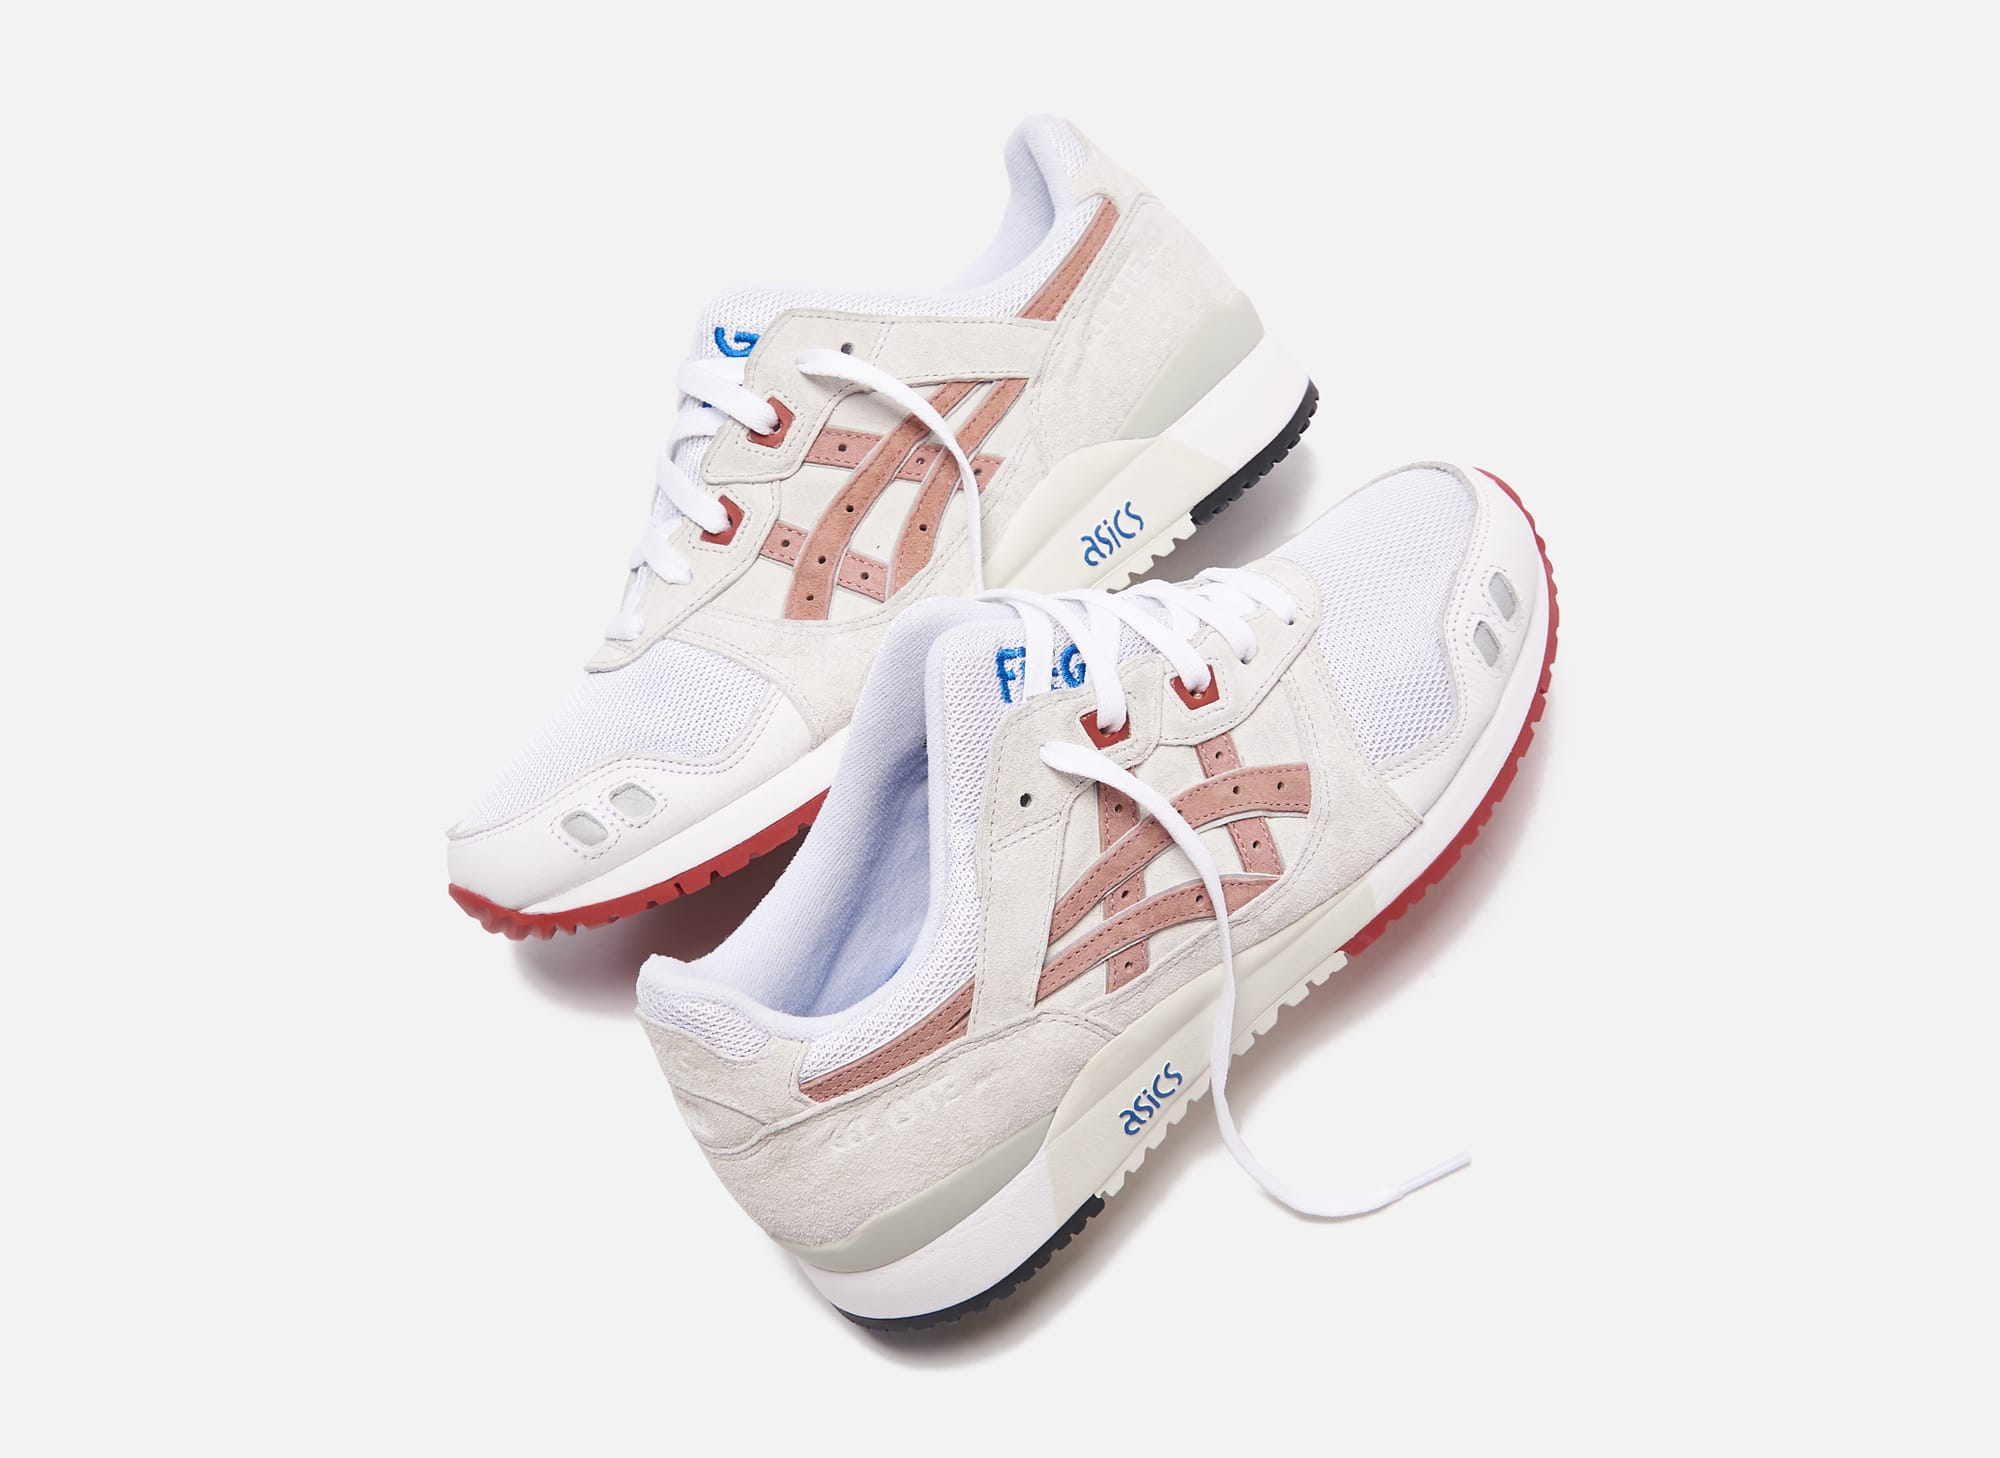 Ronnie Fieg x Asics Gel-Lyte 3 'Yoshino Rose' Side